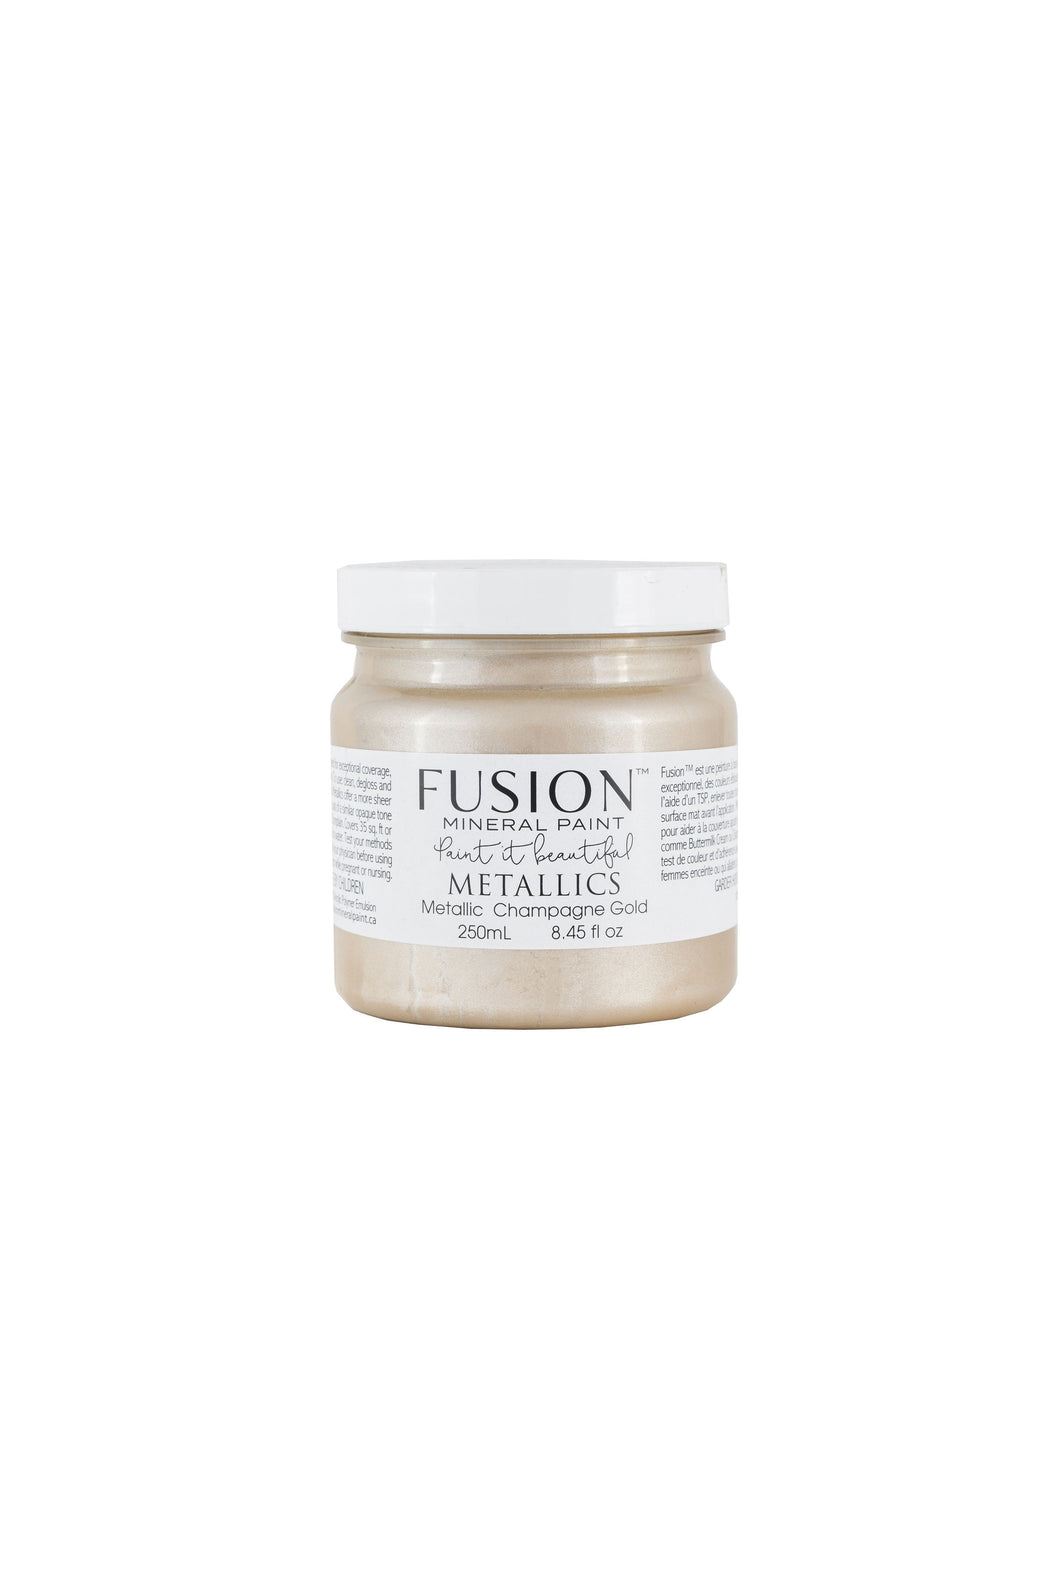 fusion_mineral_paint-metallic-champagnegold-250ml-colour_me_kt.jpg